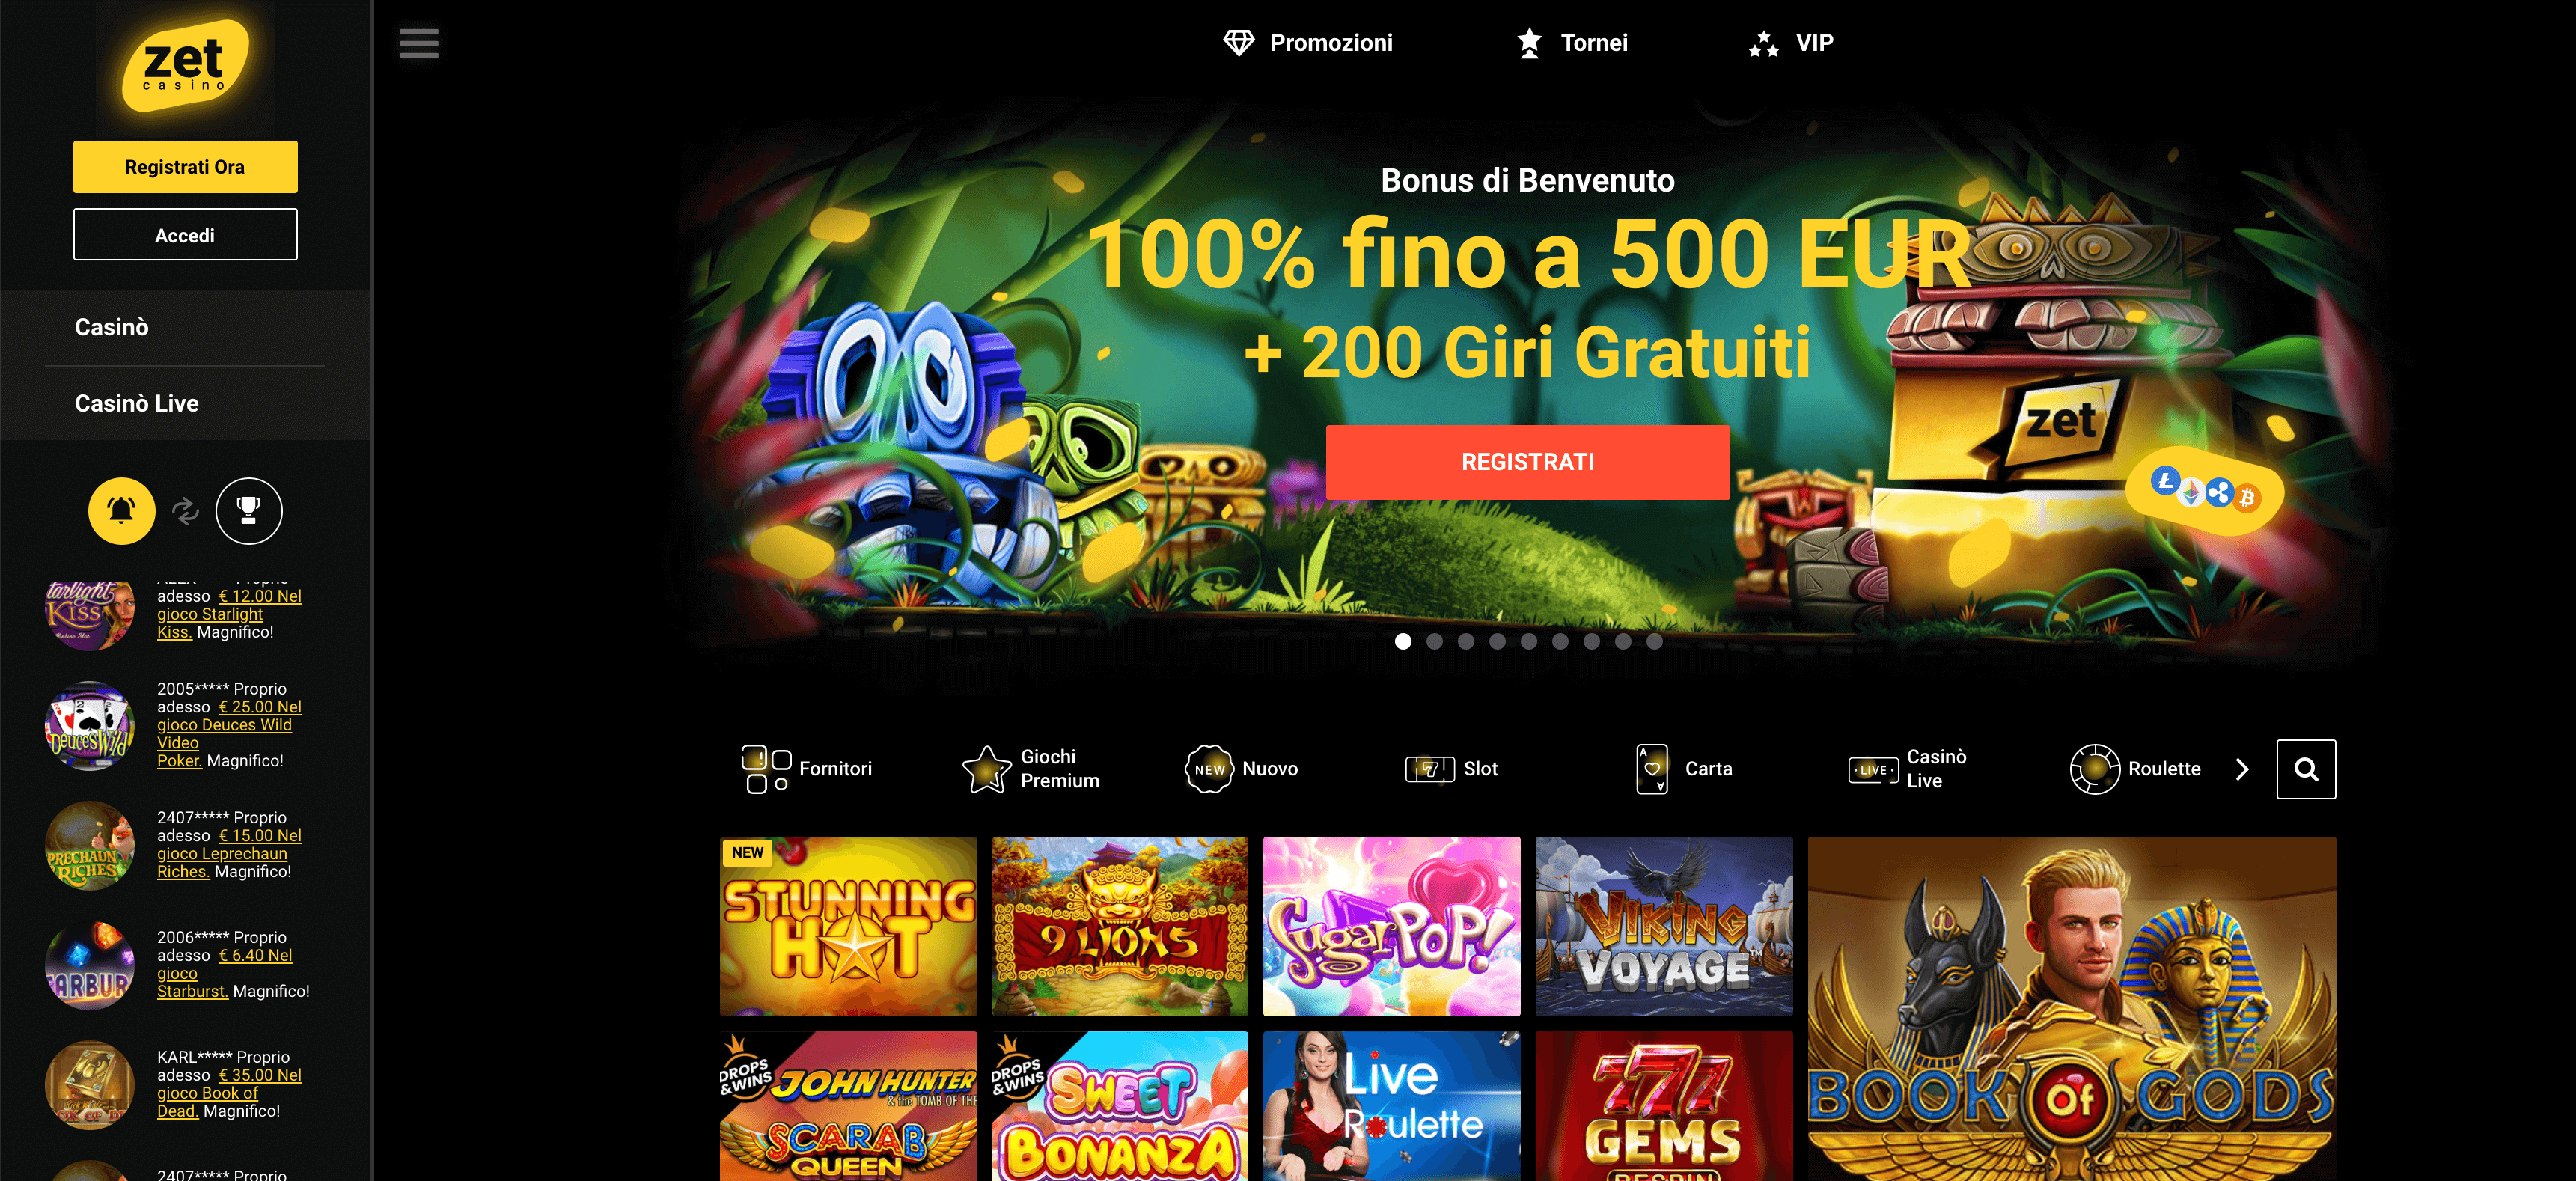 Zet Casino Home Page